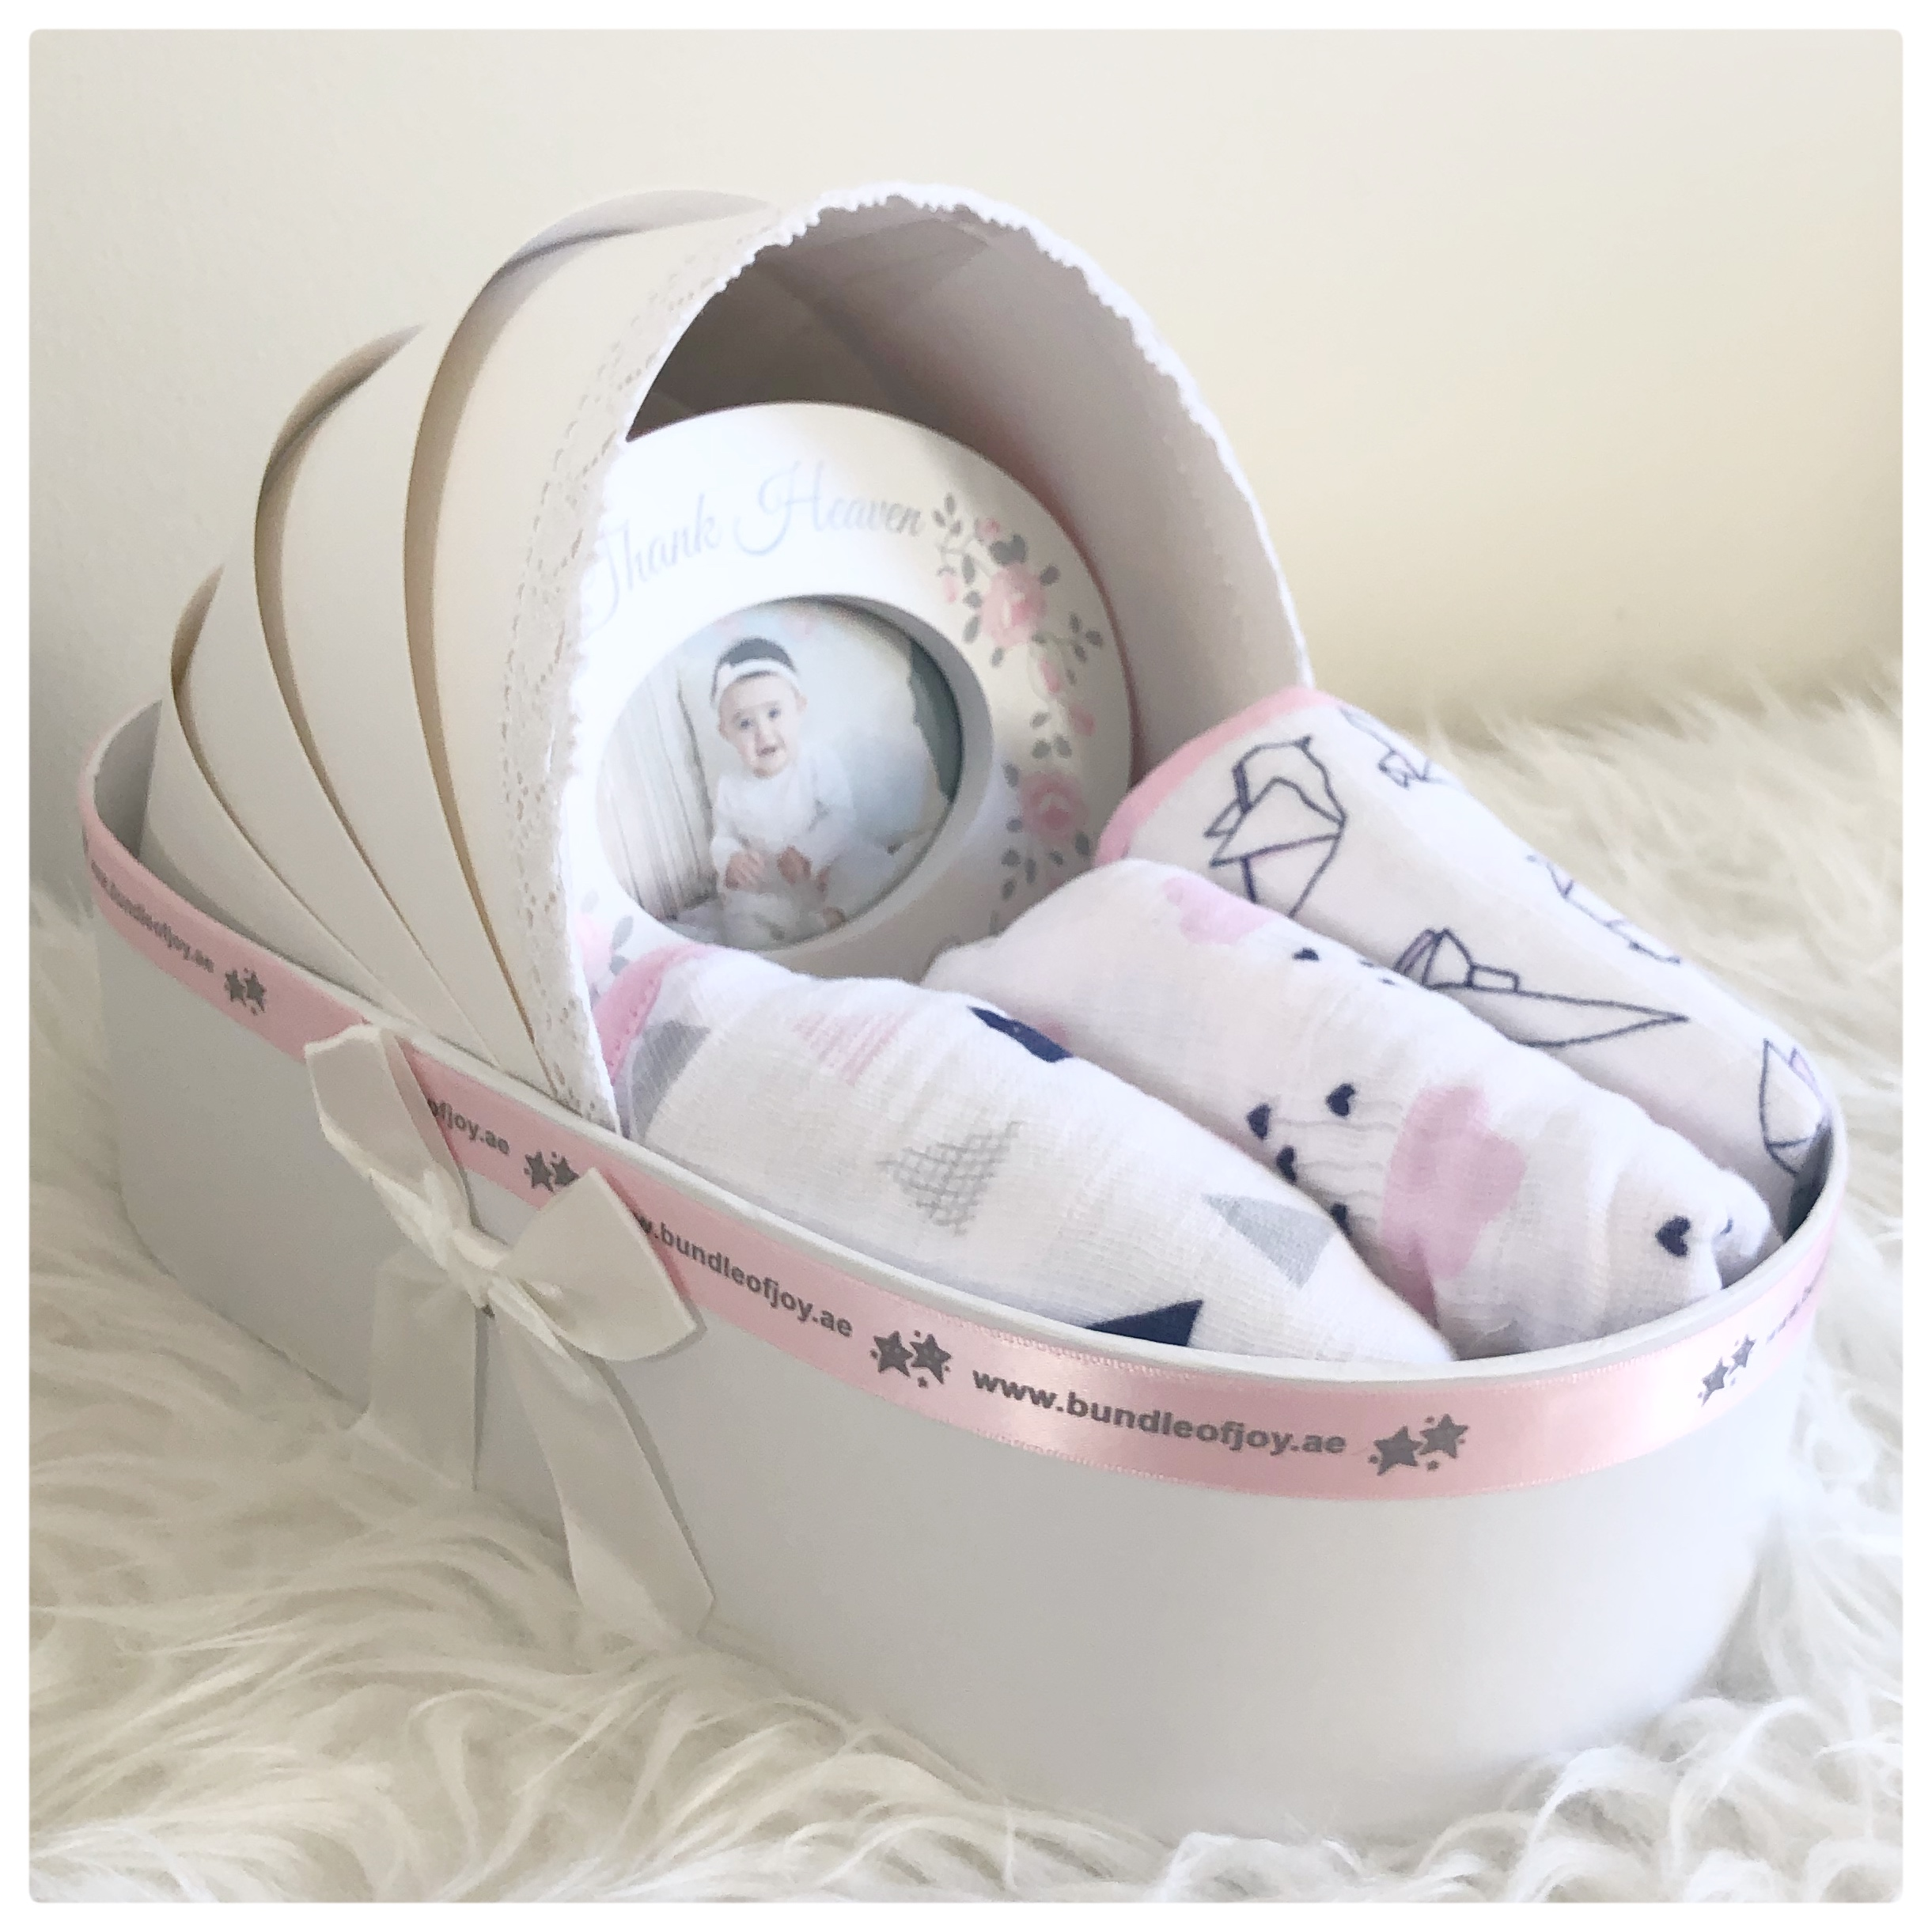 Babygirl gifts